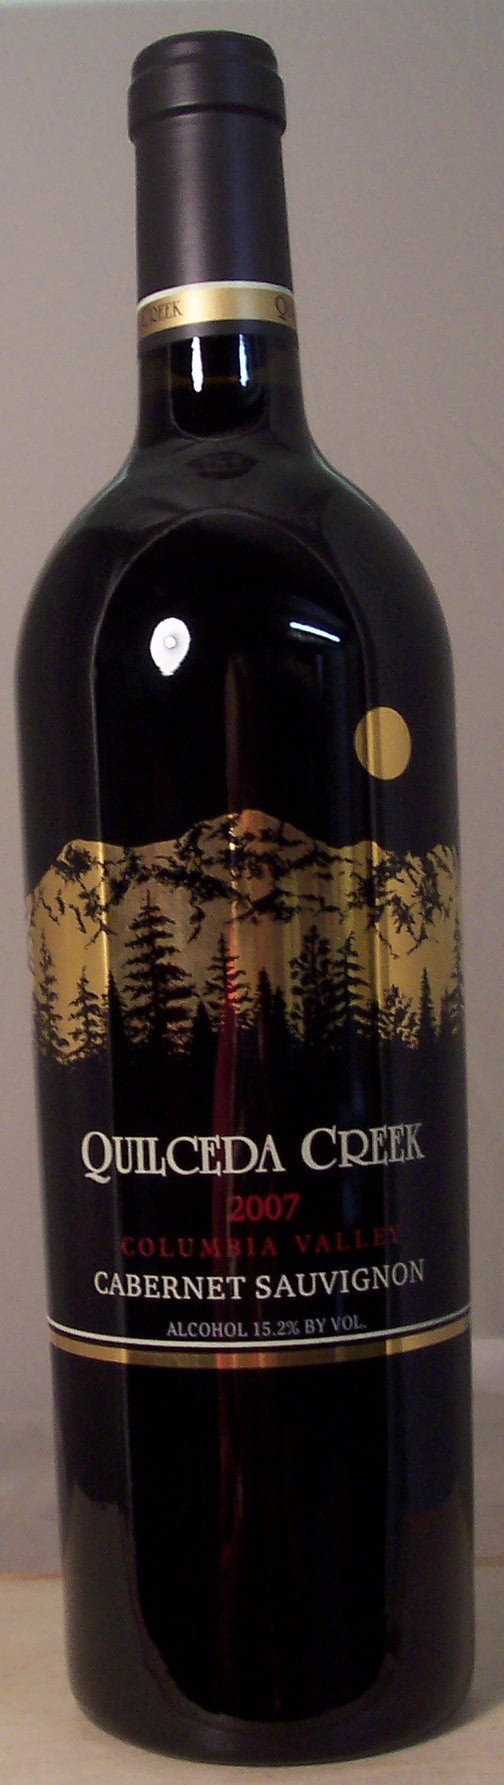 Quilceda Creek Vintners Cabernet Sauvignon Washington 2007